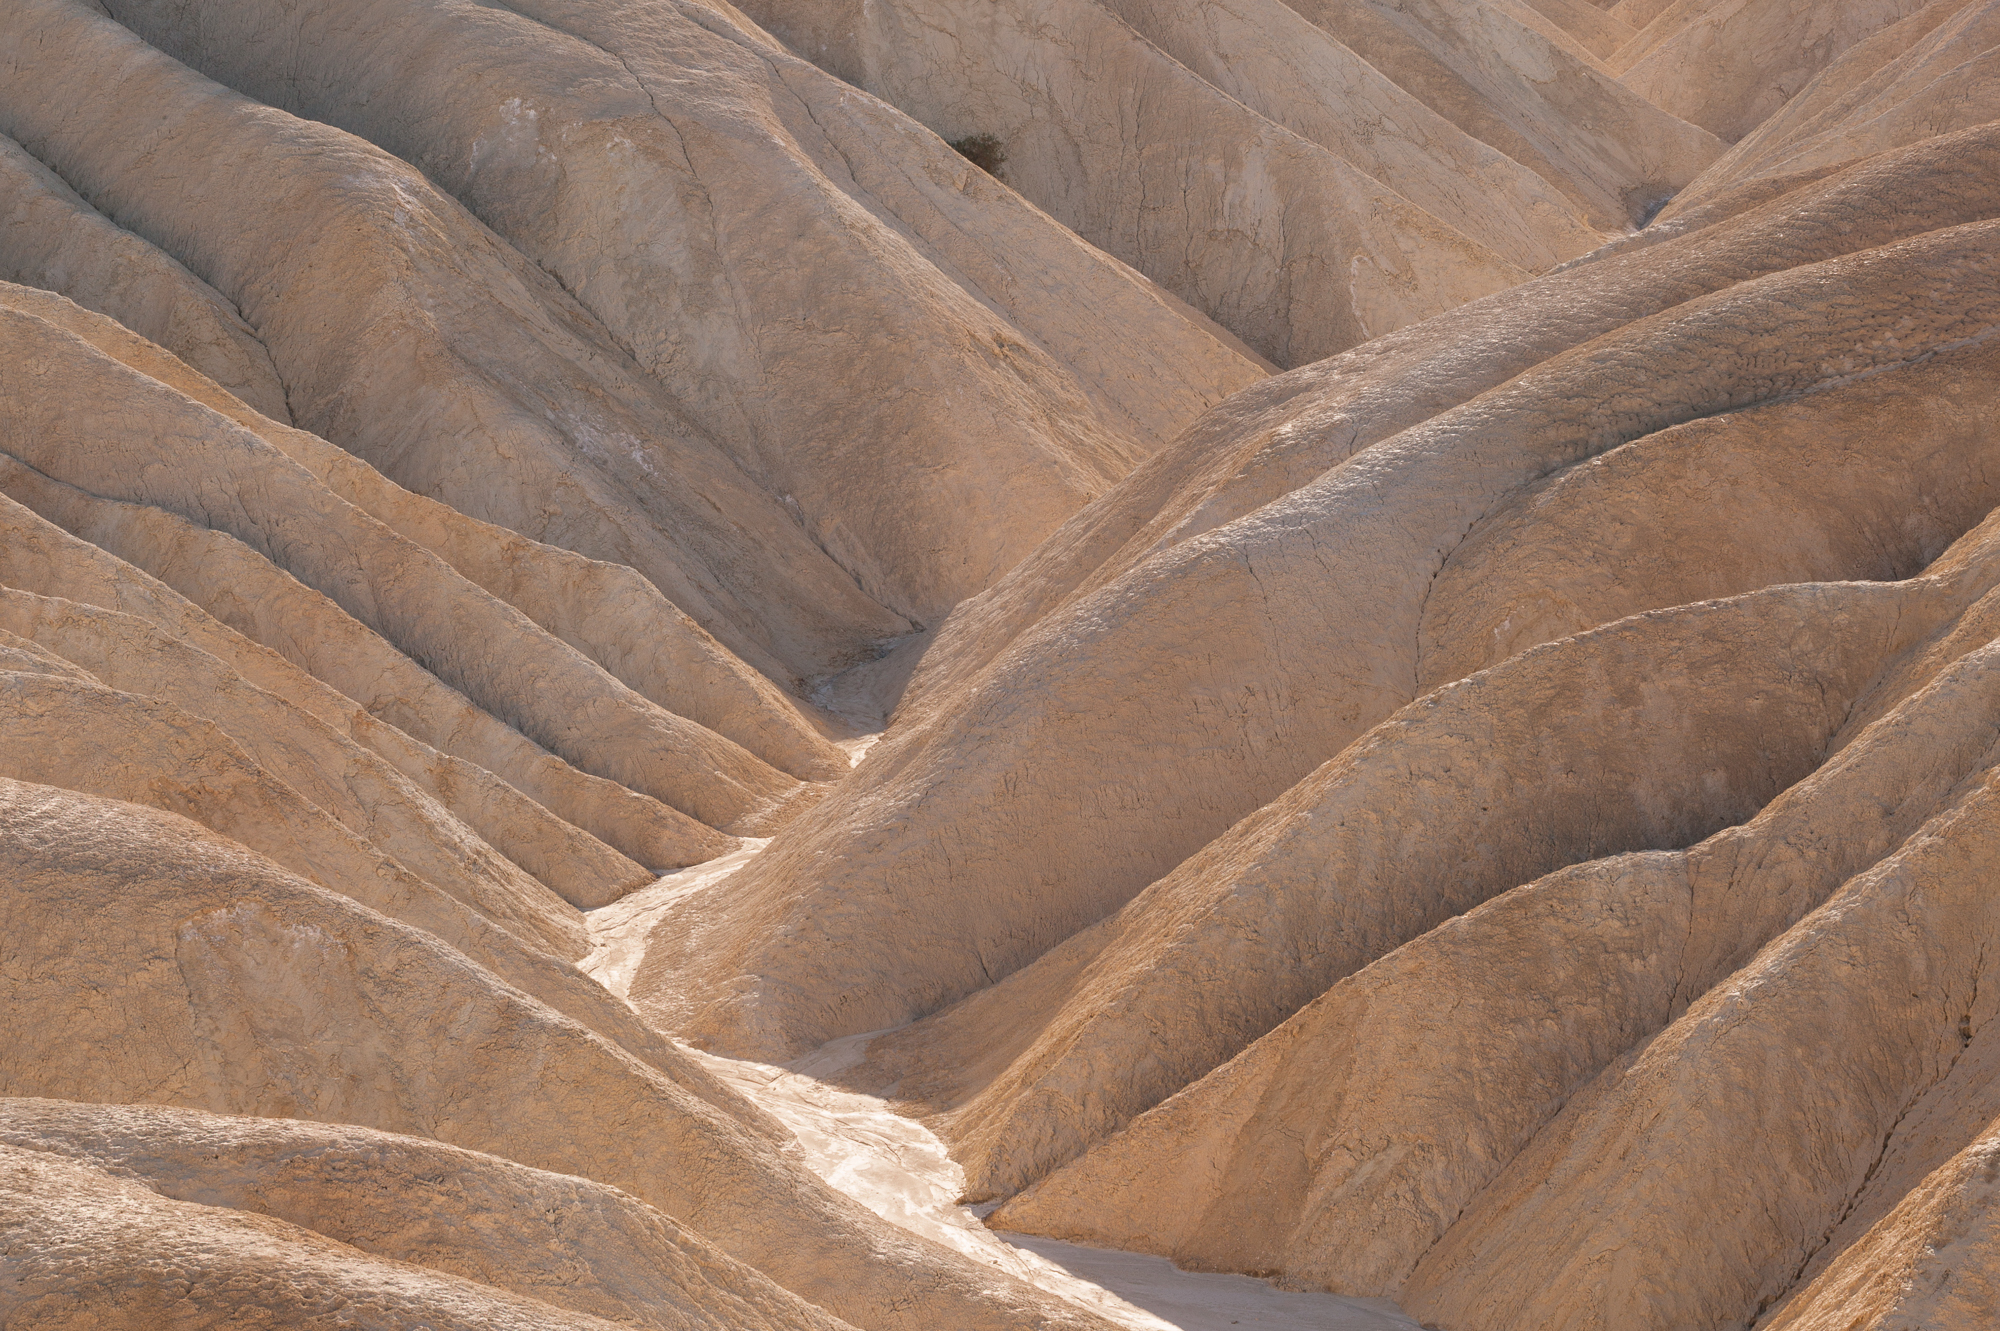 Example of a low dynamic range photo, from Death Valley National Park.